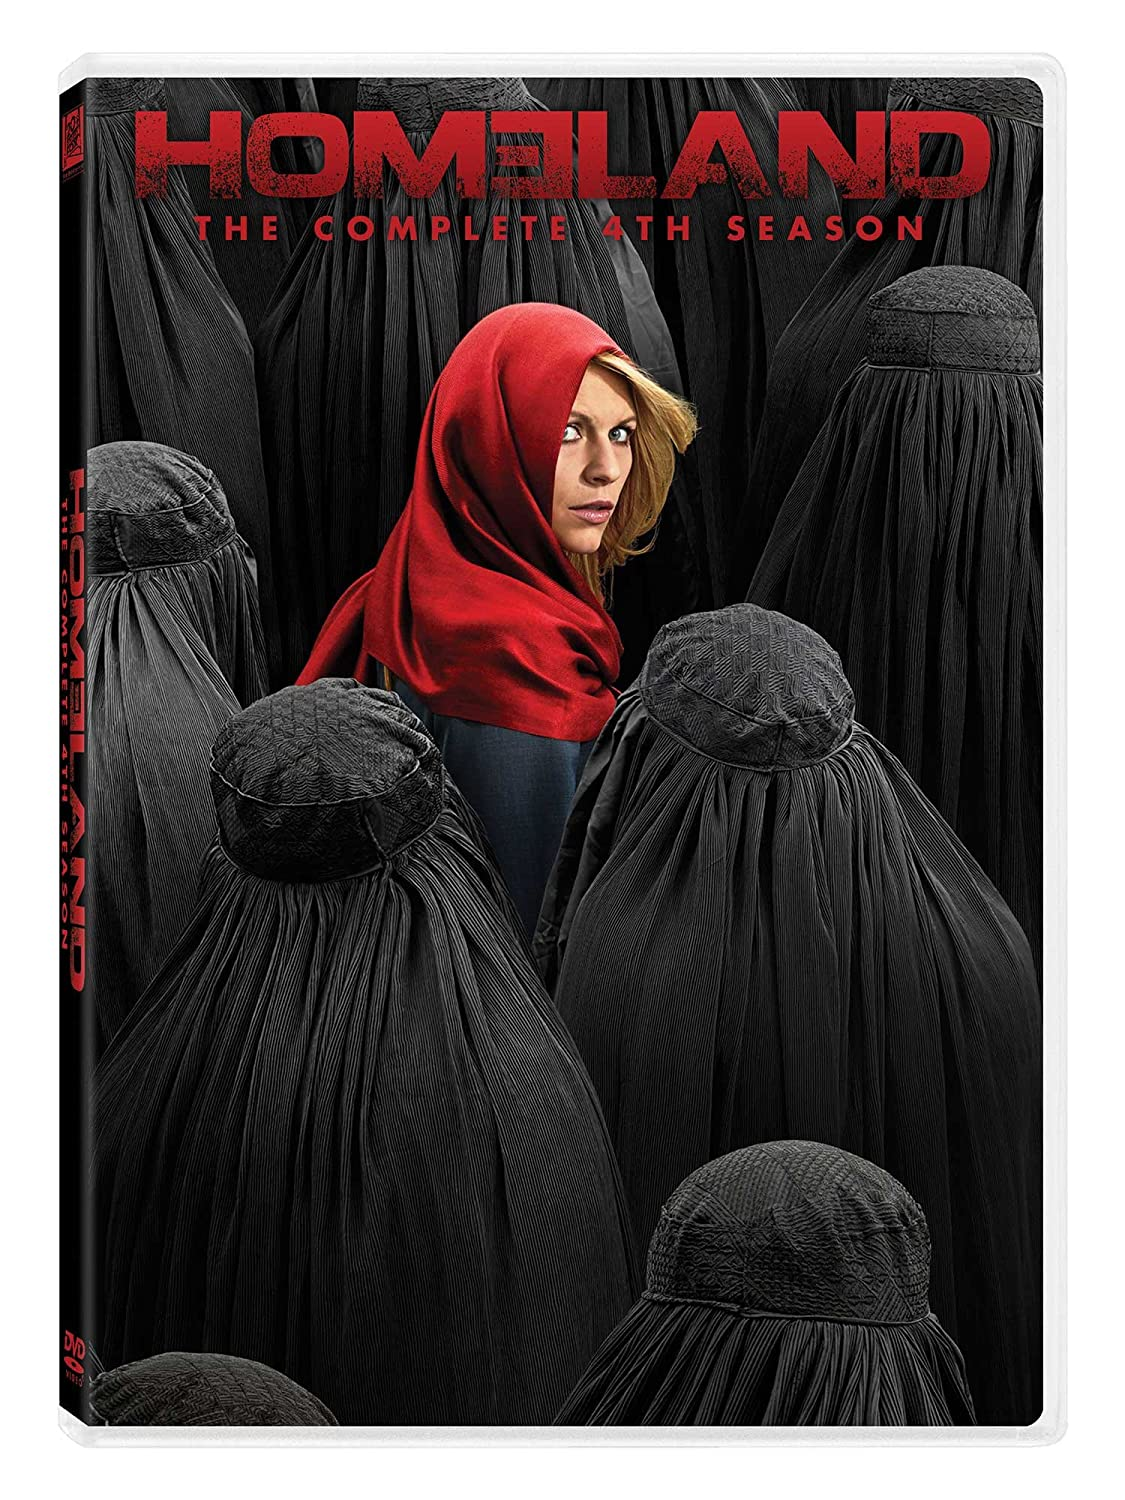 Amazon.in: Buy Homeland: The Complete Season 4 (4-Disc Box Set) DVD ...